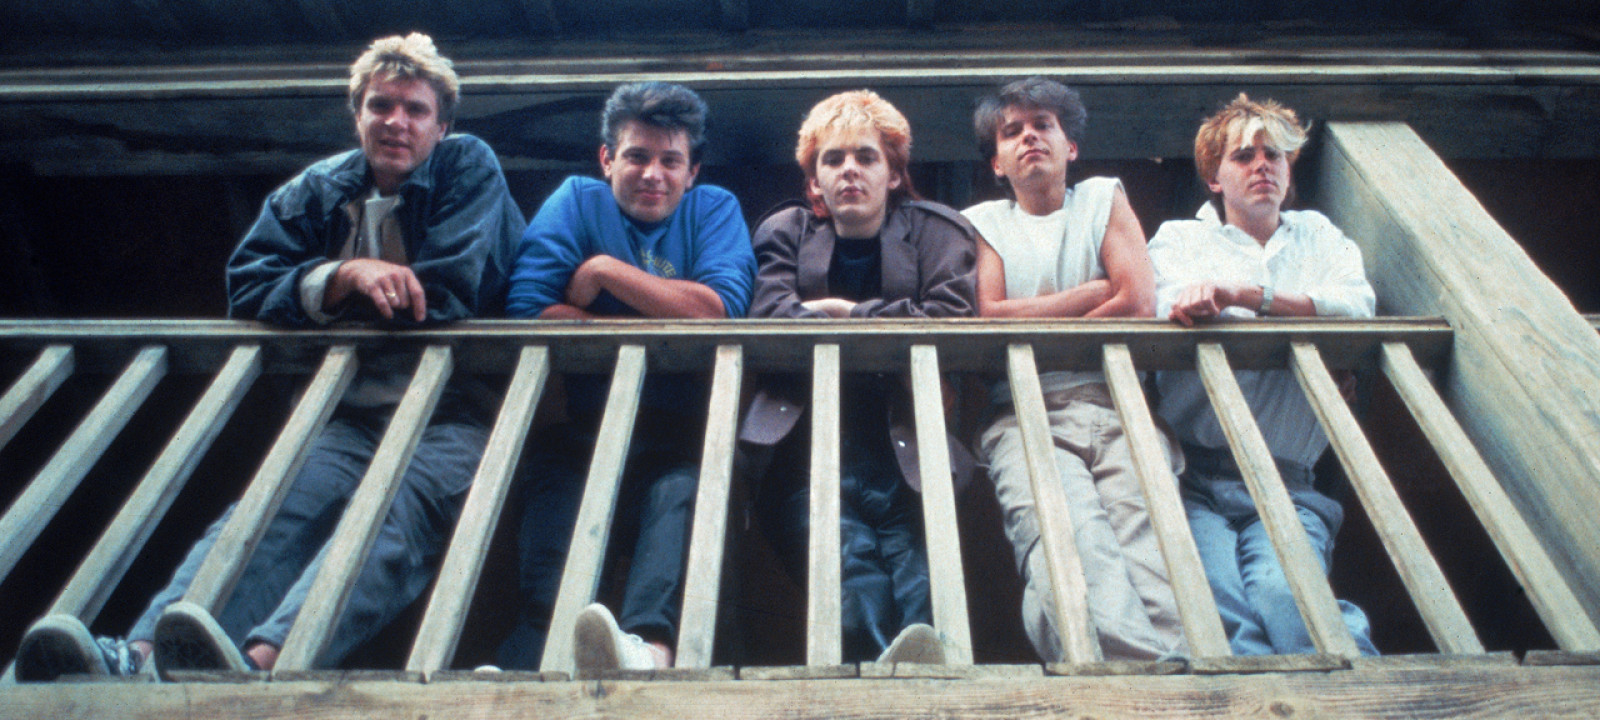 Duran Duran (Pic: Hulton Archive/Getty Images)